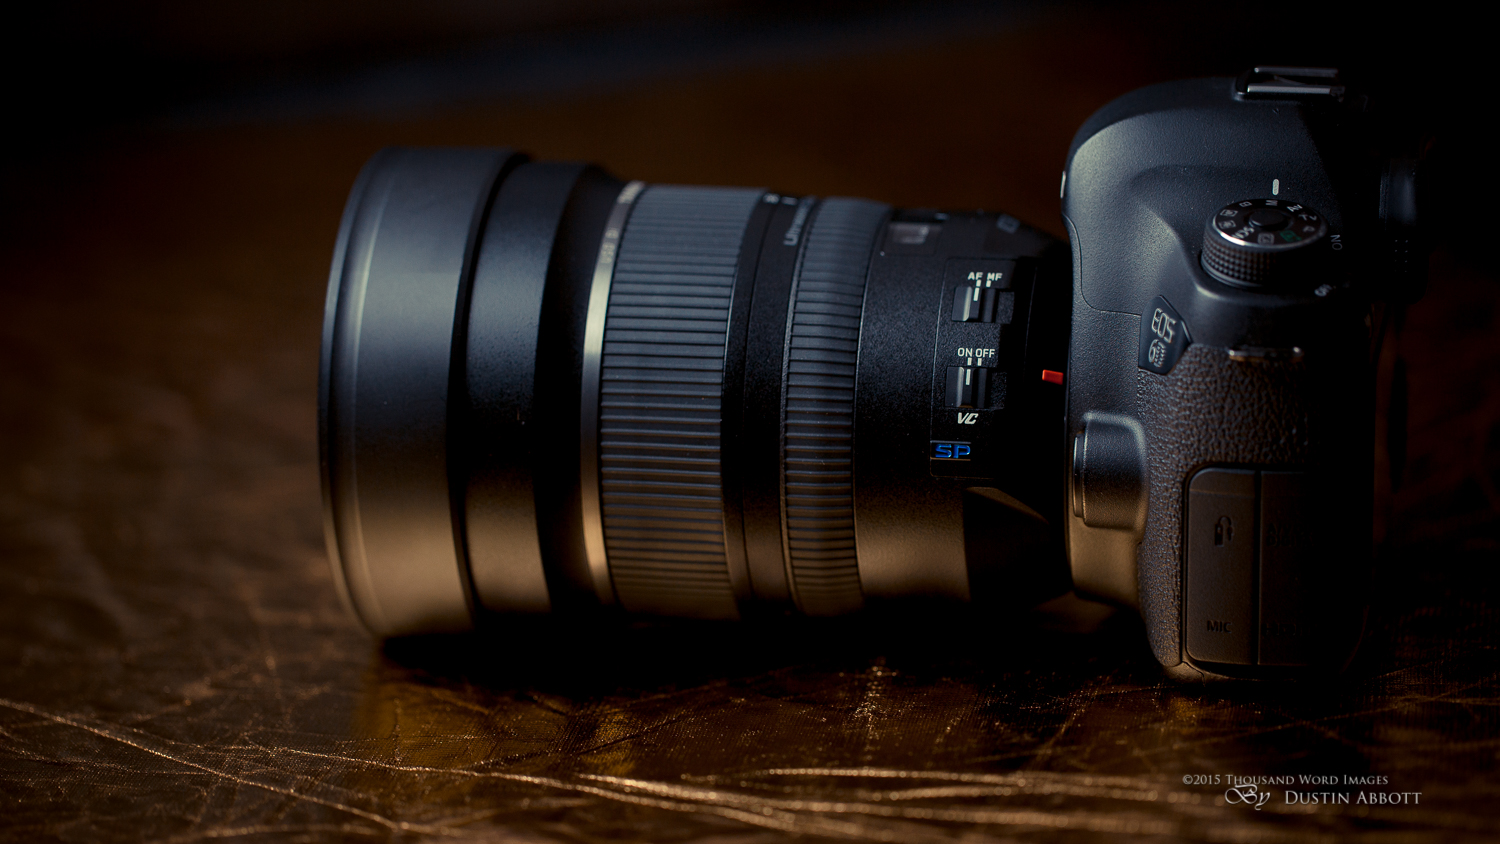 Carl zeiss zf distagon t* 15mm f/28 handling and features